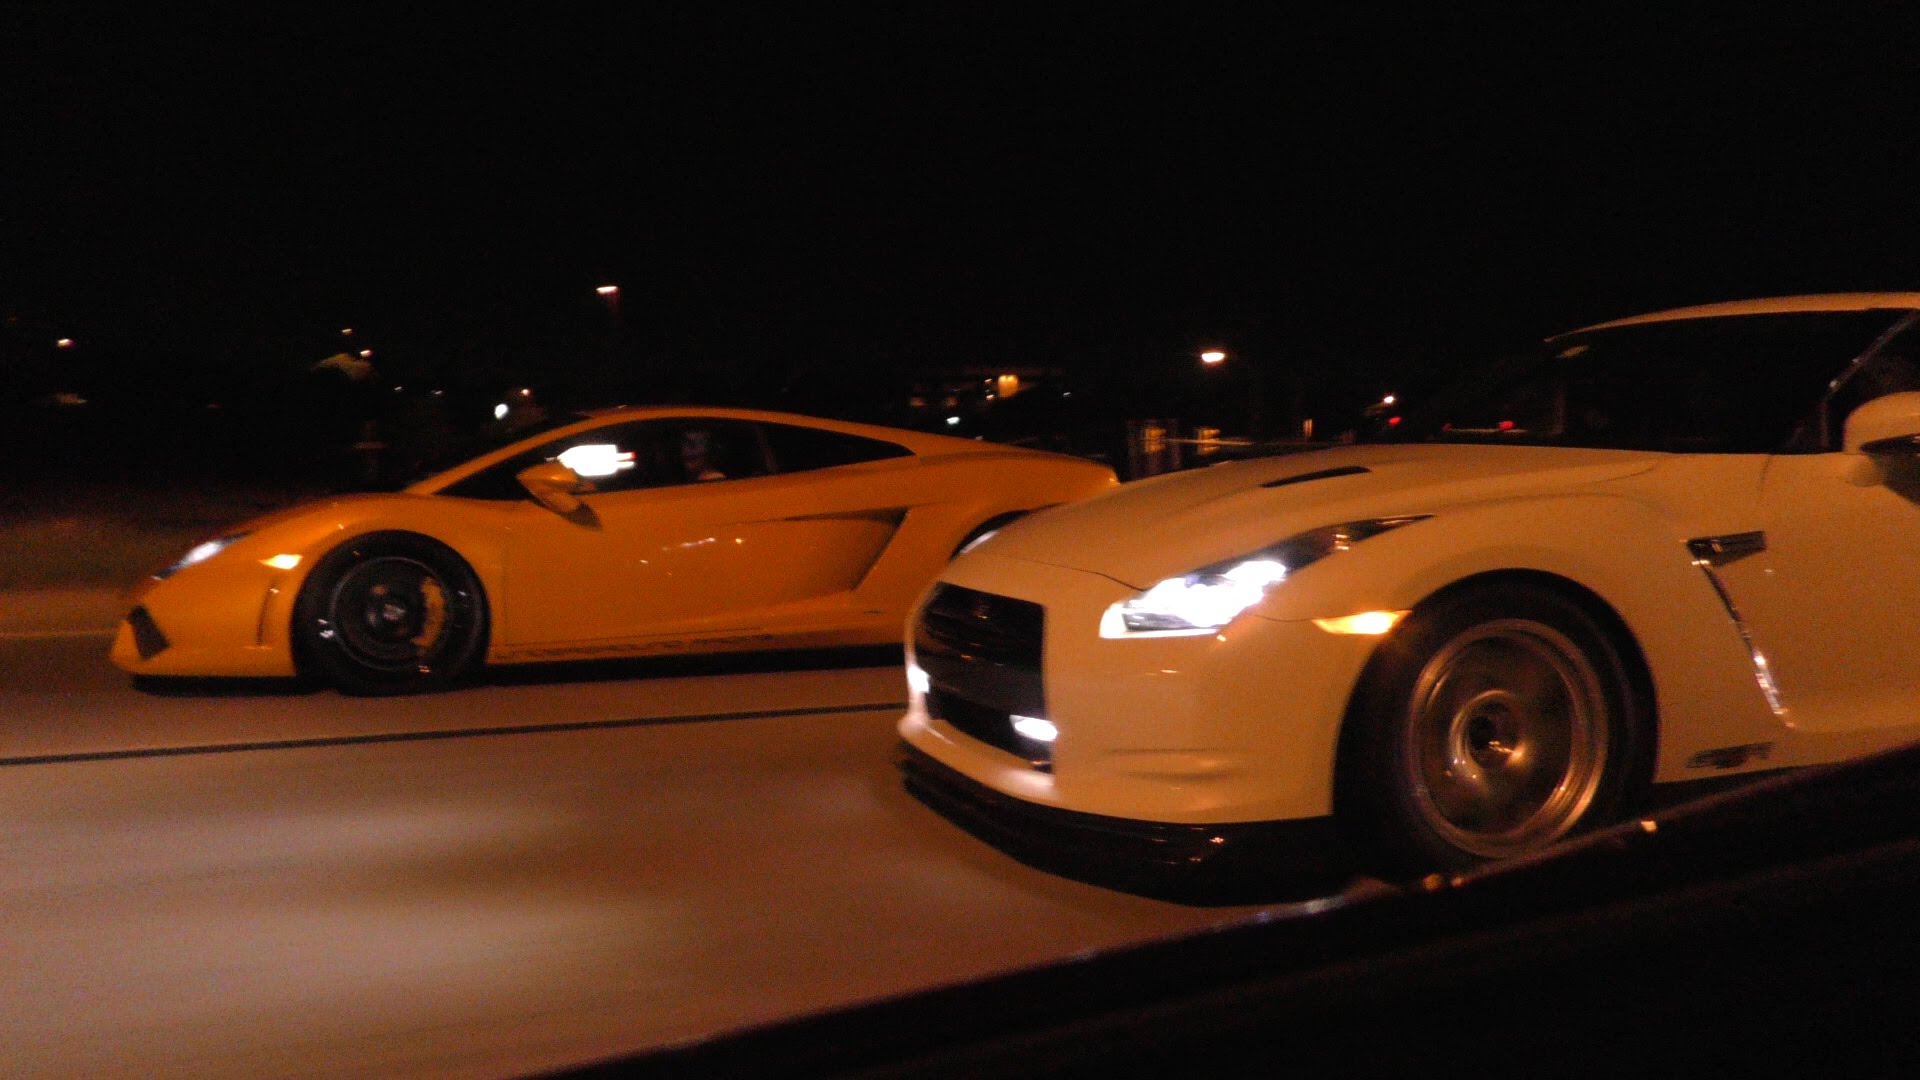 Epic Street Race Between 3 Cars, The Winner Will Shock You!